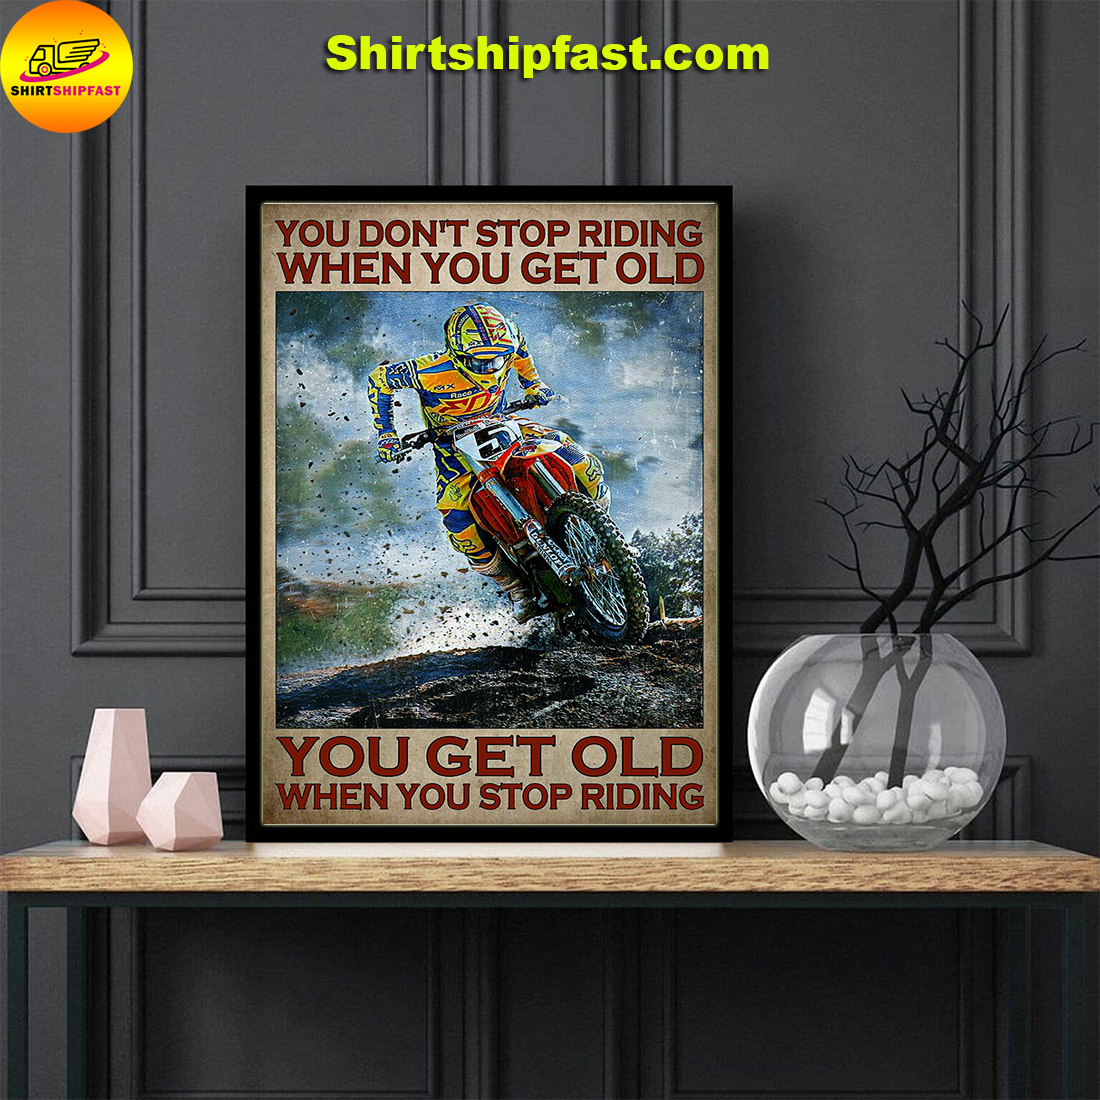 Motorcycling motocross You don't stop riding when you get old poster - Picture 3